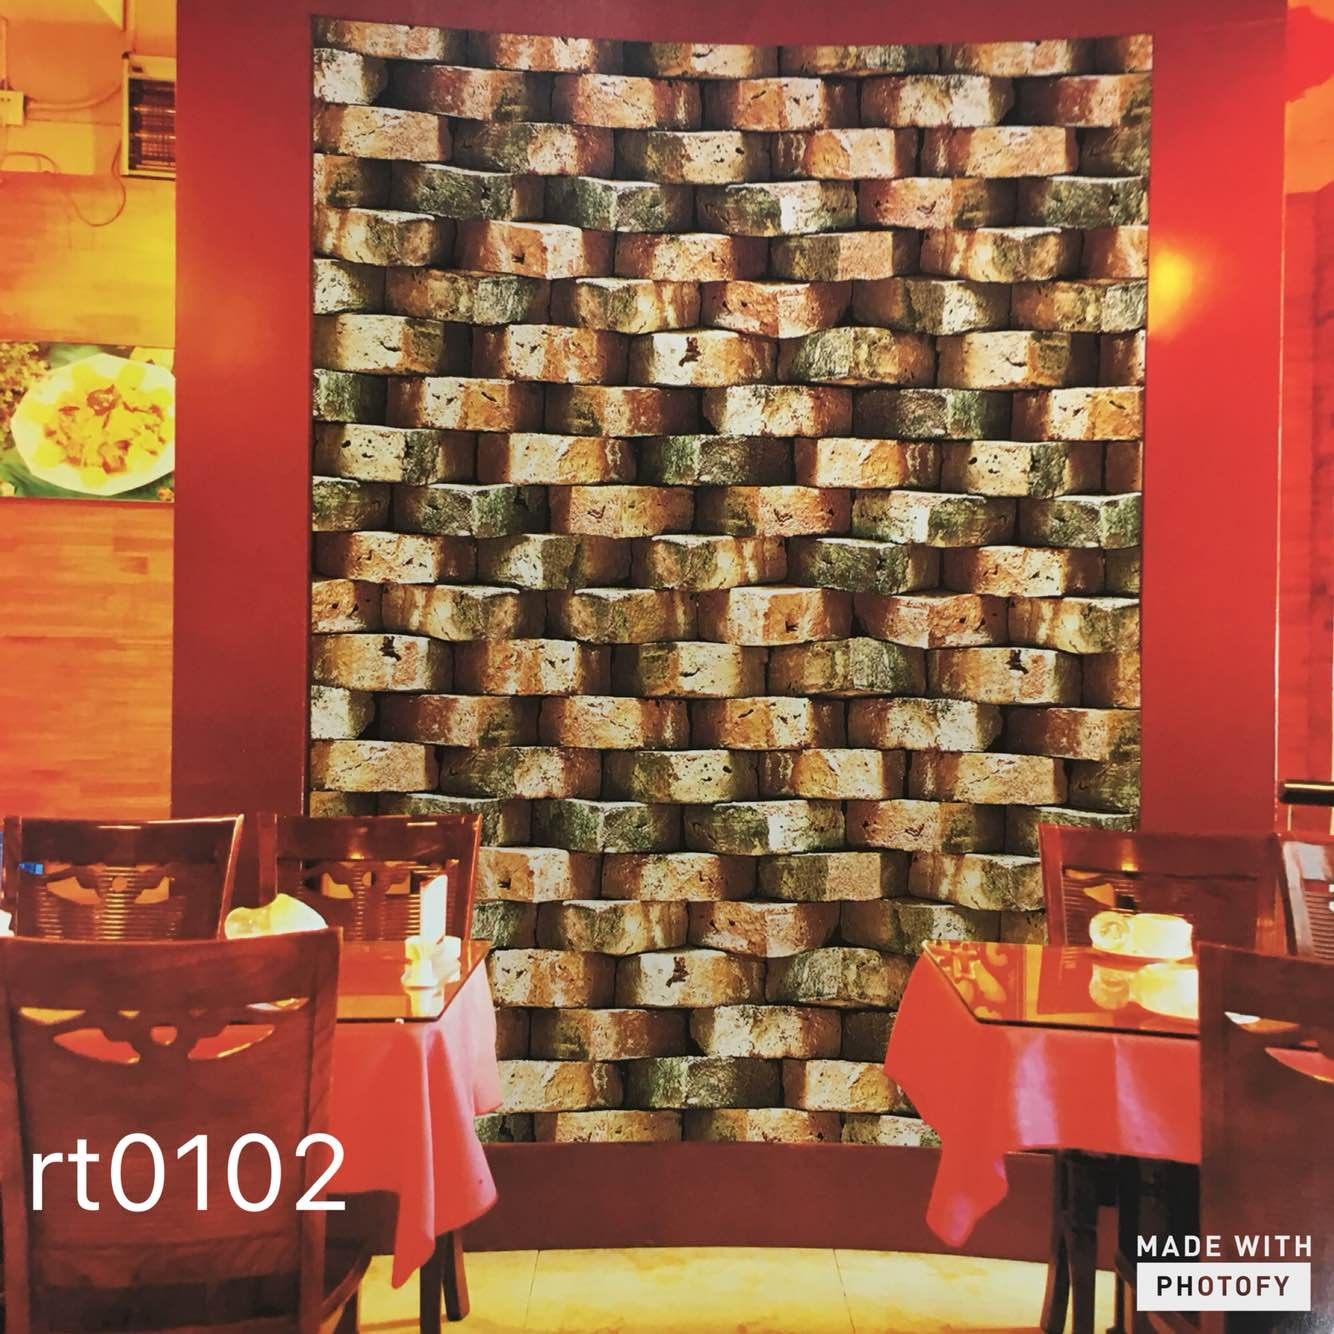 3d Wallpaper for Restaurant.  A 3d Effect Wallpaper gives you amazing look to your interior. It makes room very Beautifully.   A perfect world Wallpaper supplier in Delhi.  To buy call us   Wallparadise- Perfect world wallpaper in Ashok vihar Delhi.